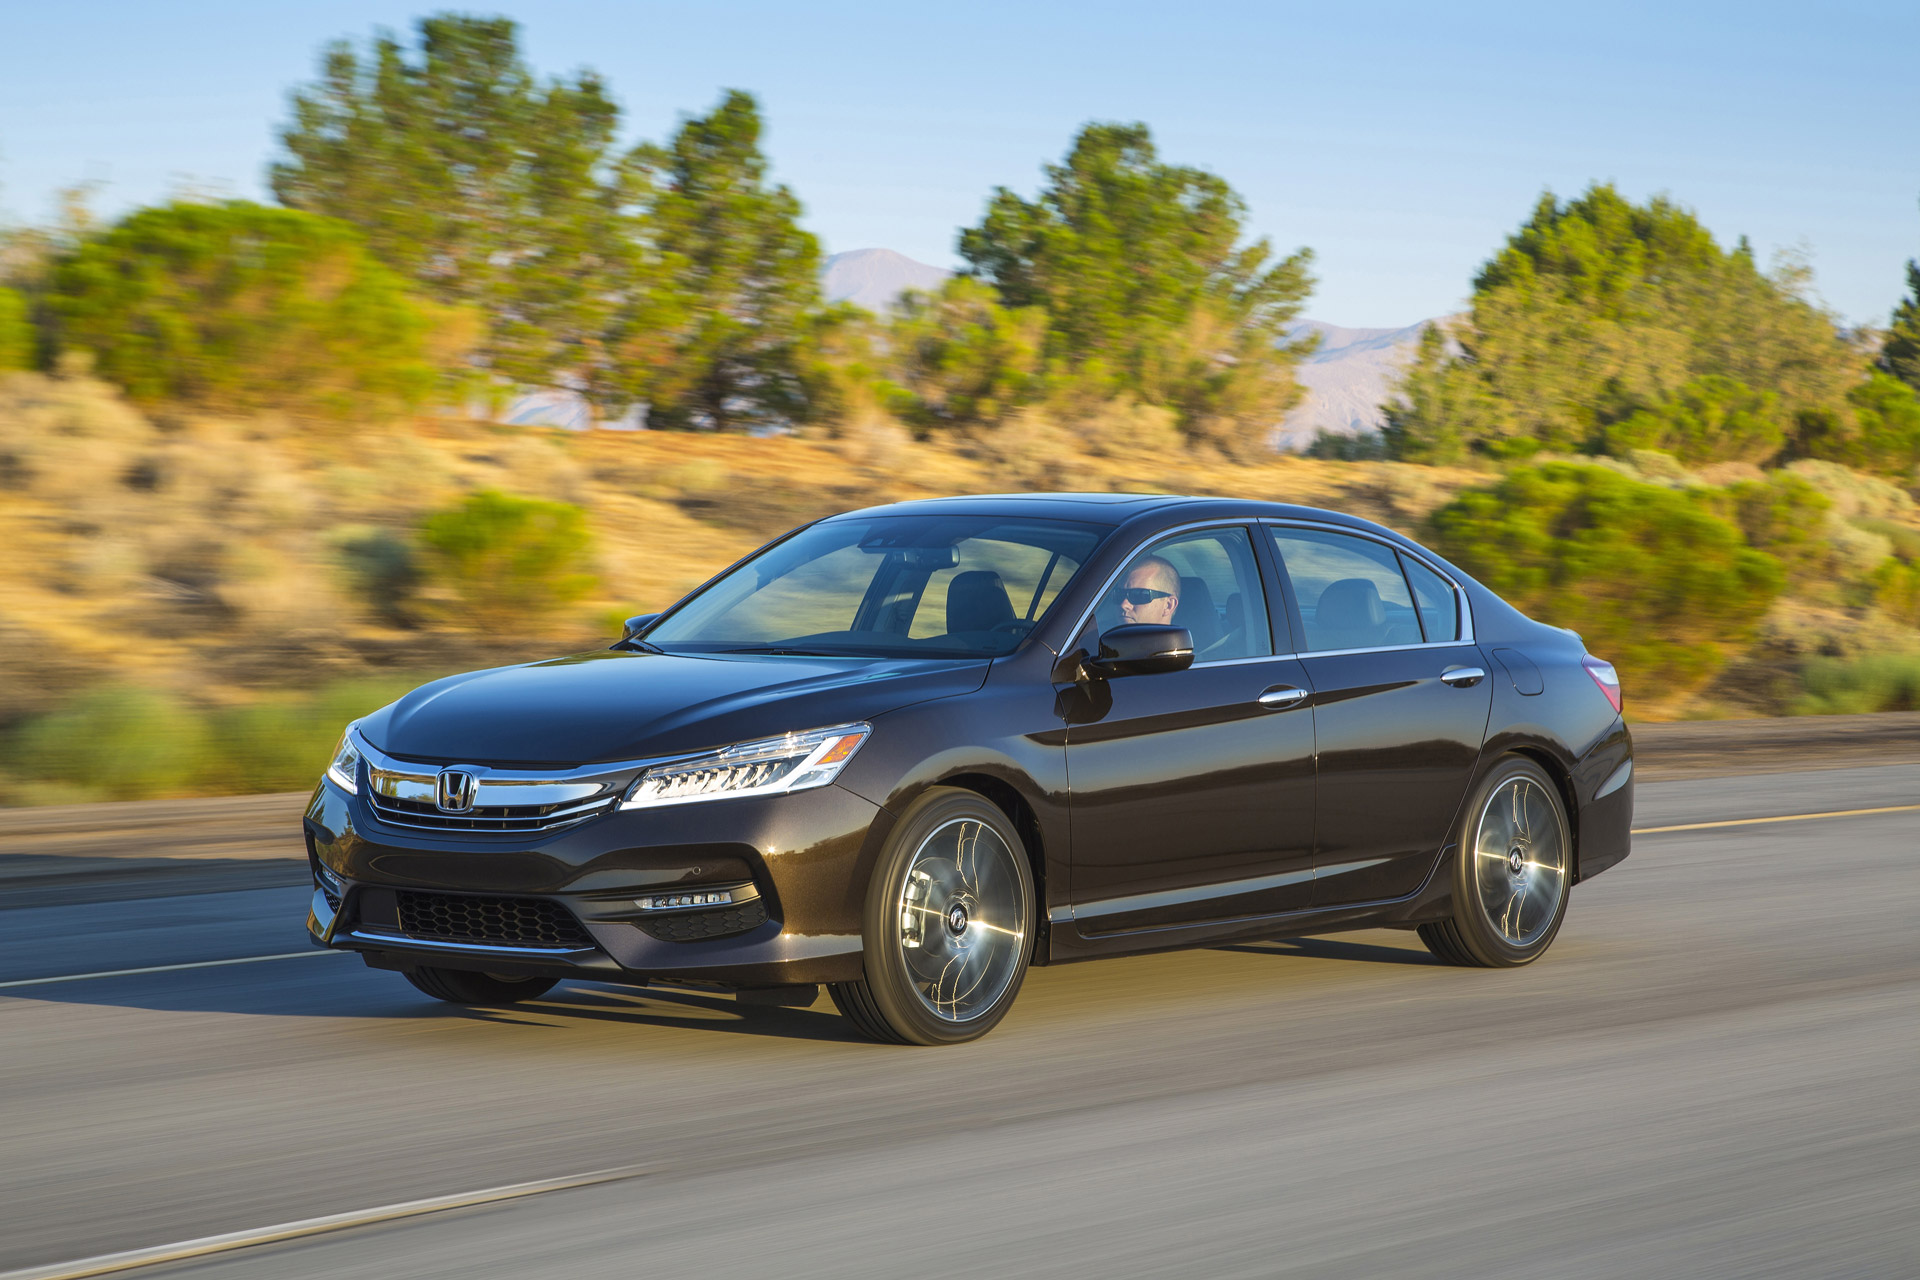 accord this dow colour to price best technology steel l again the modern ex featured honda navi has metallic that with comes featuring vehicle loaded